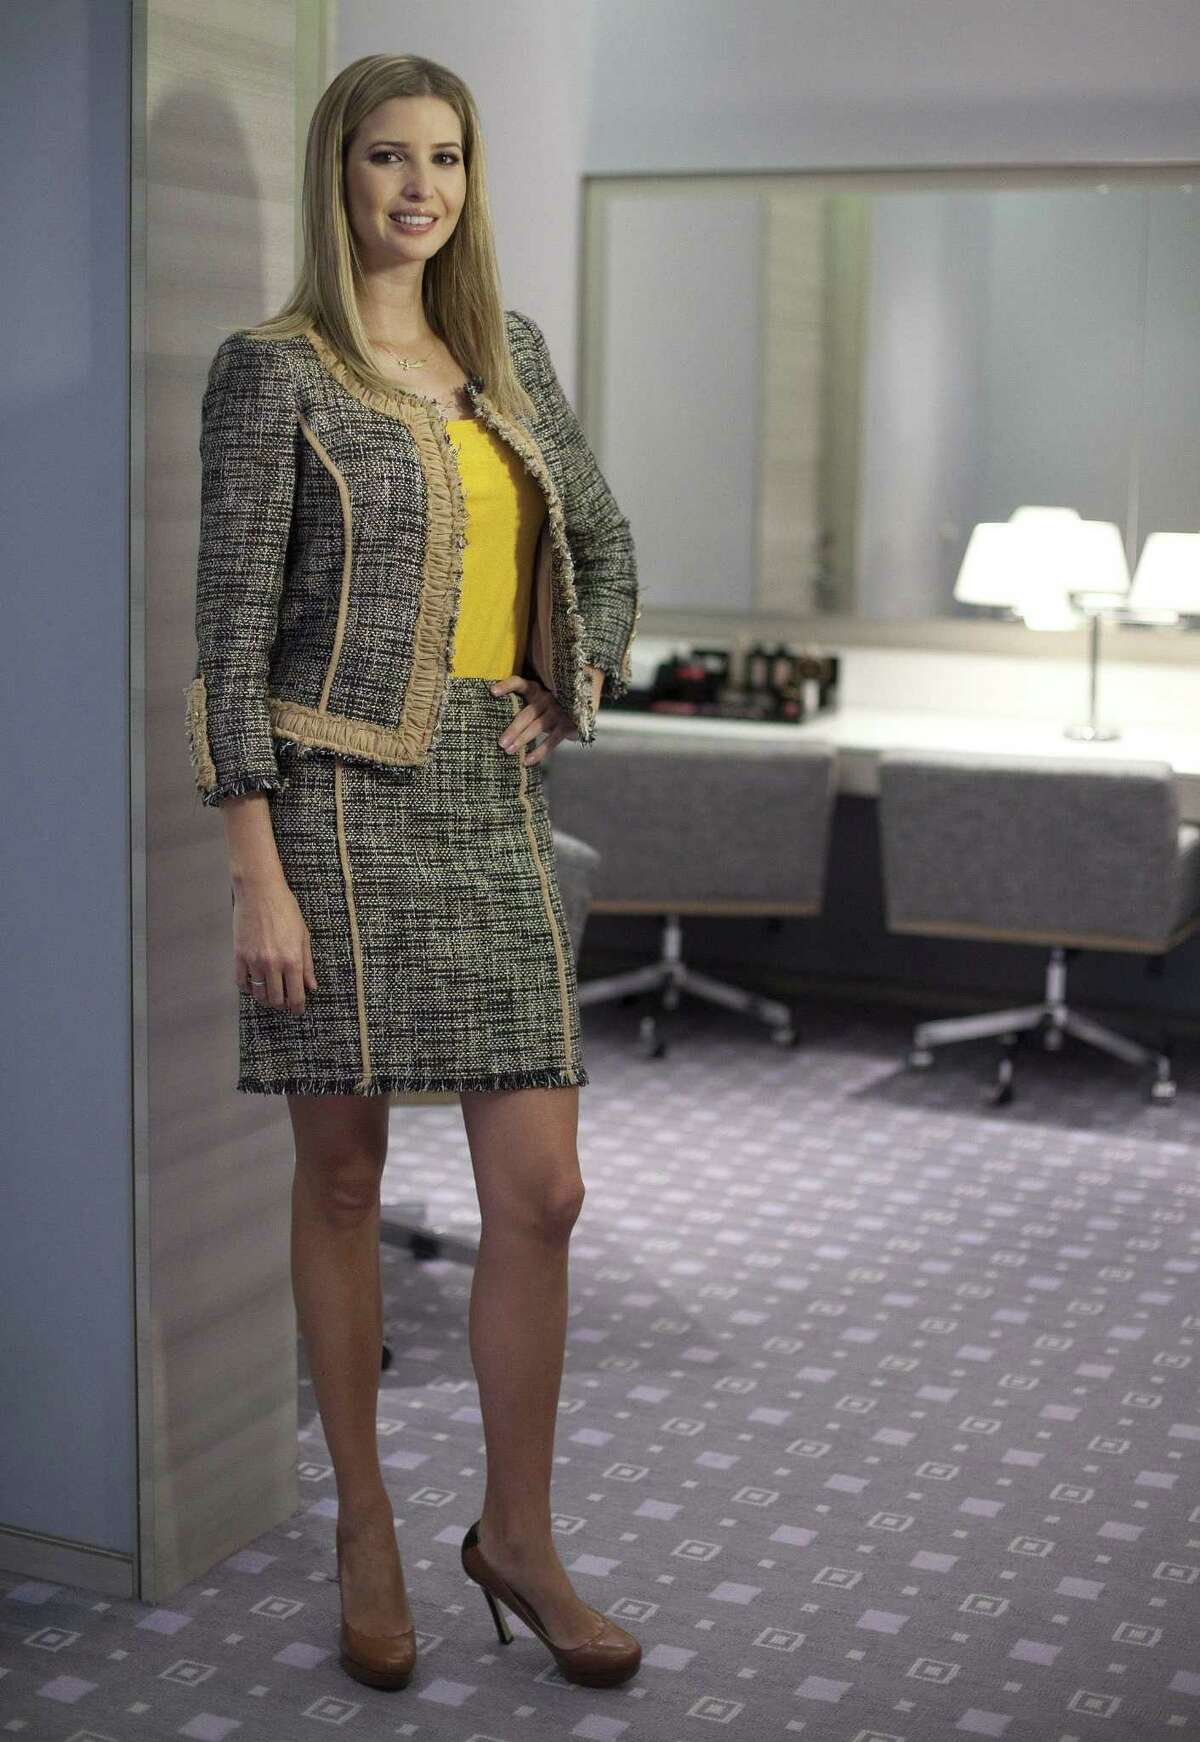 Ivanka Trump models an outfit following a 2015 interview to promote her clothing line in Toronto.